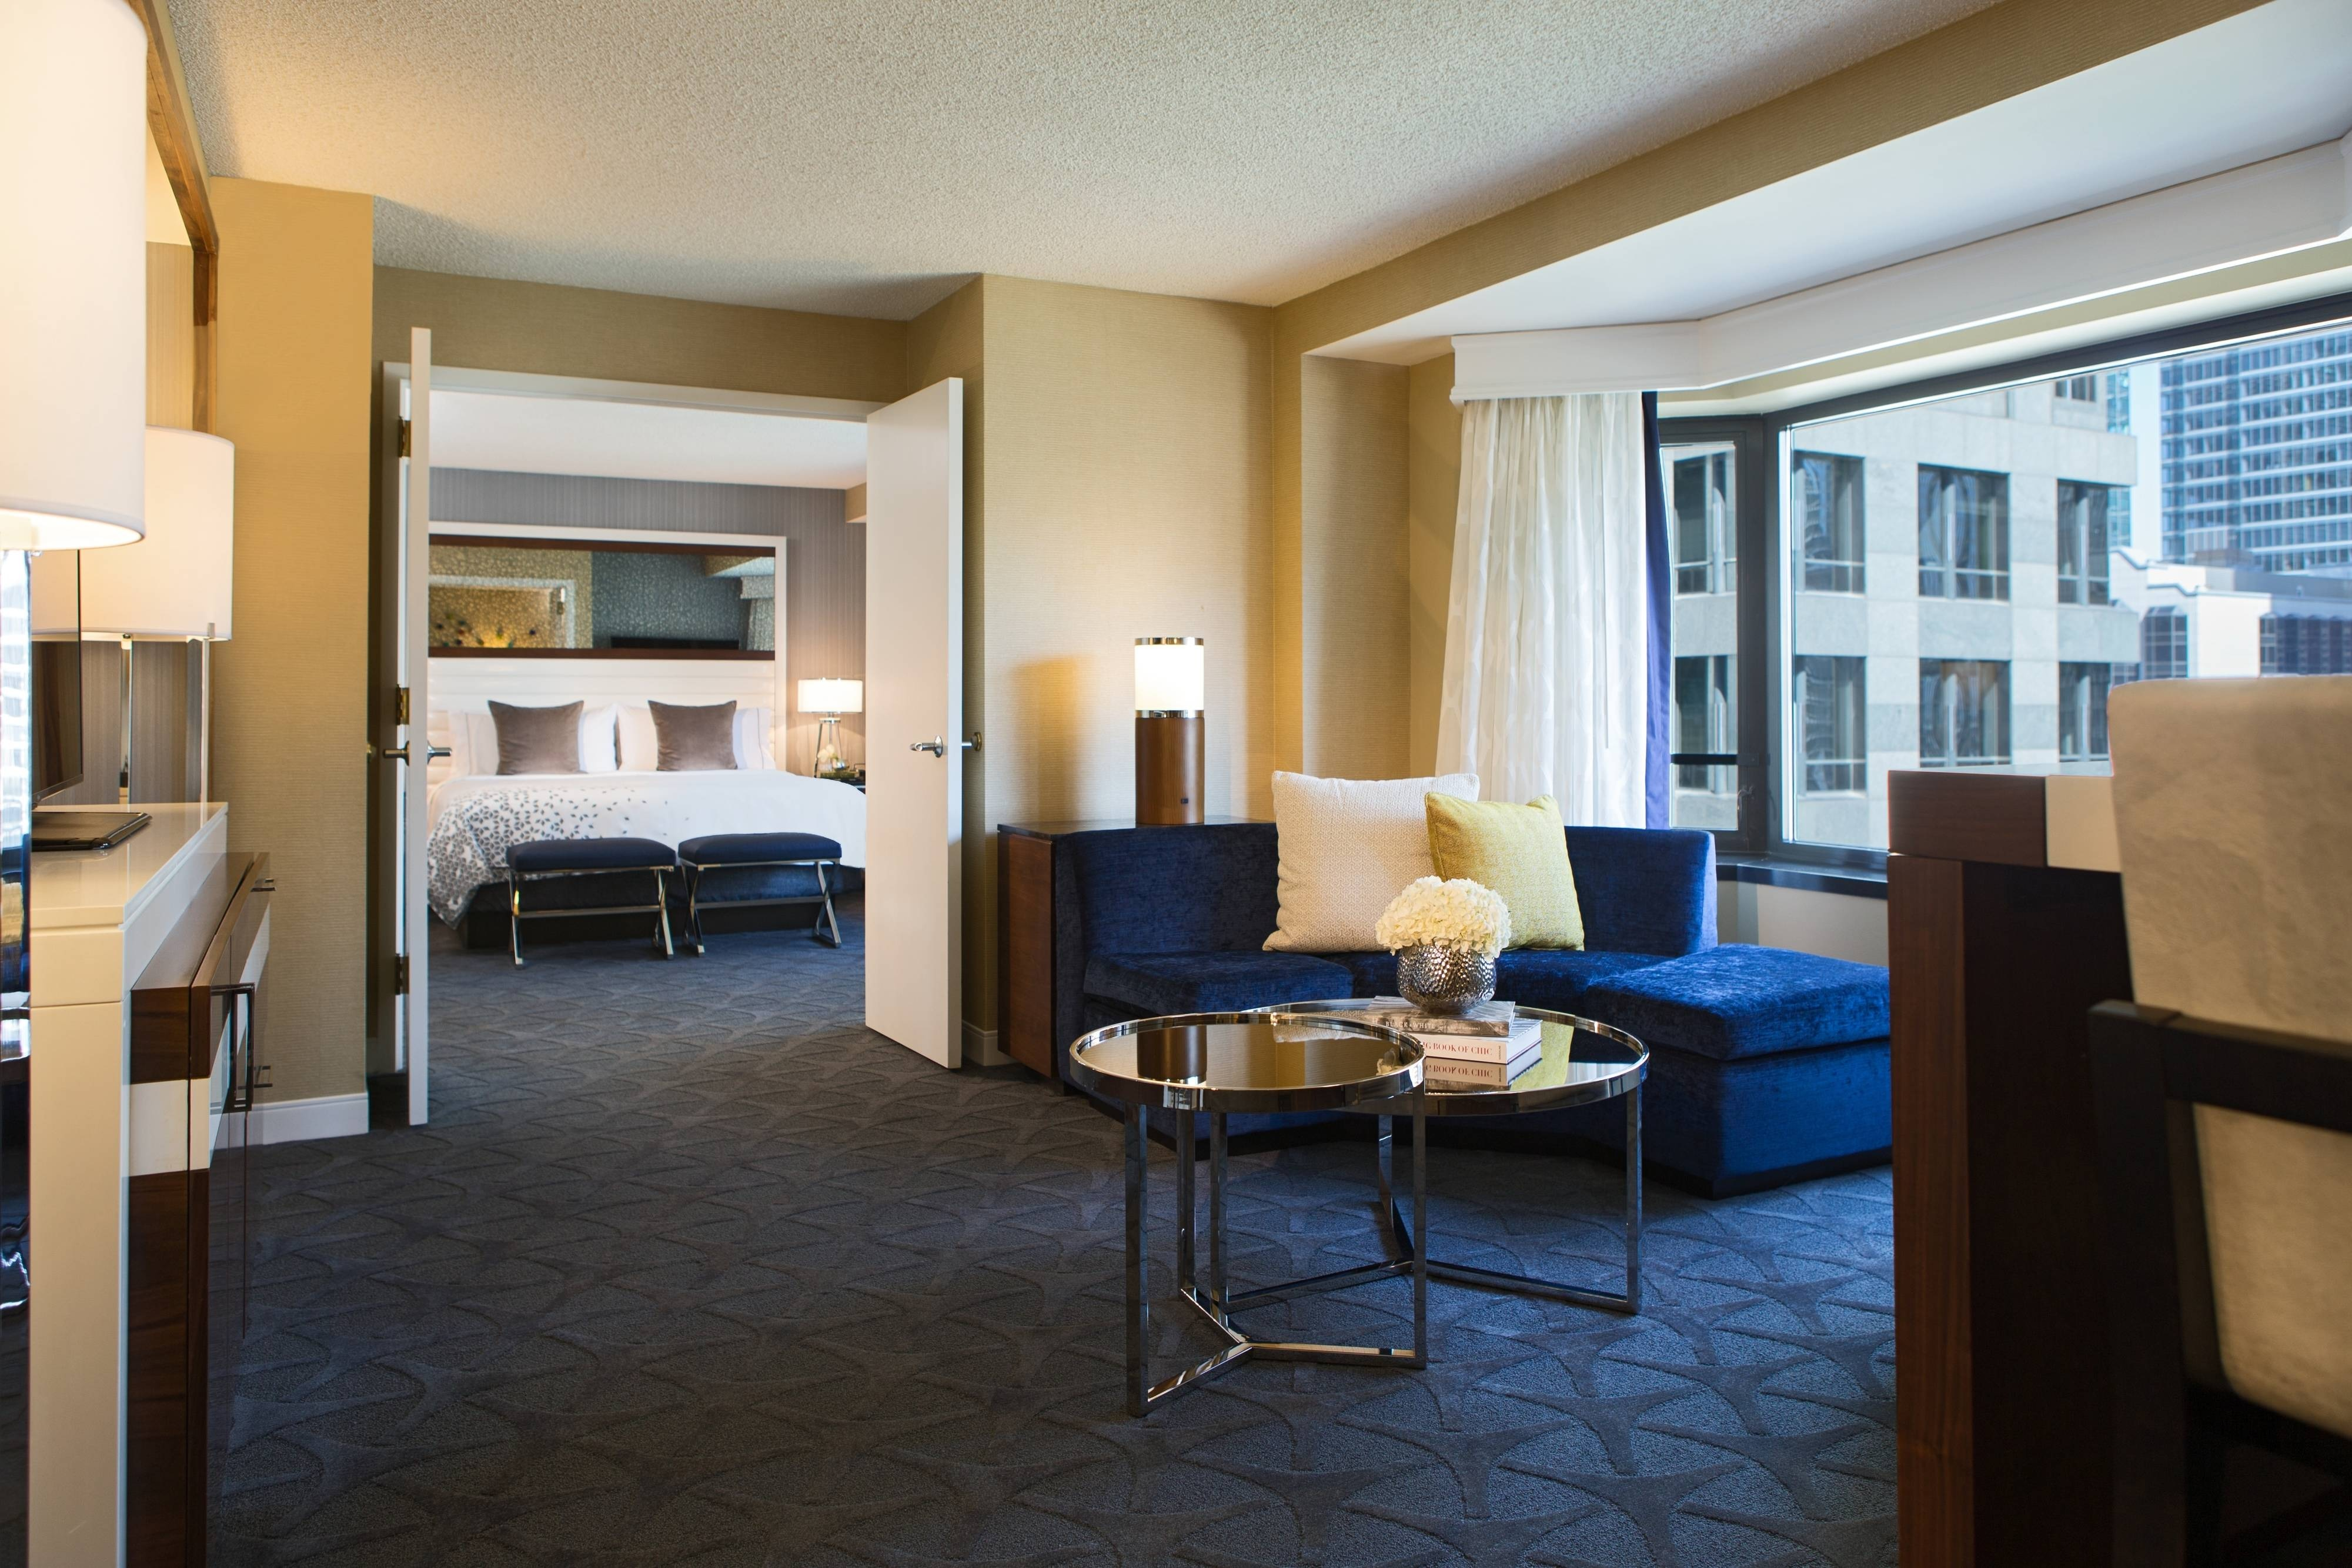 Downtown chicago hotel rooms and suites renaissance for Hotel decor chicago